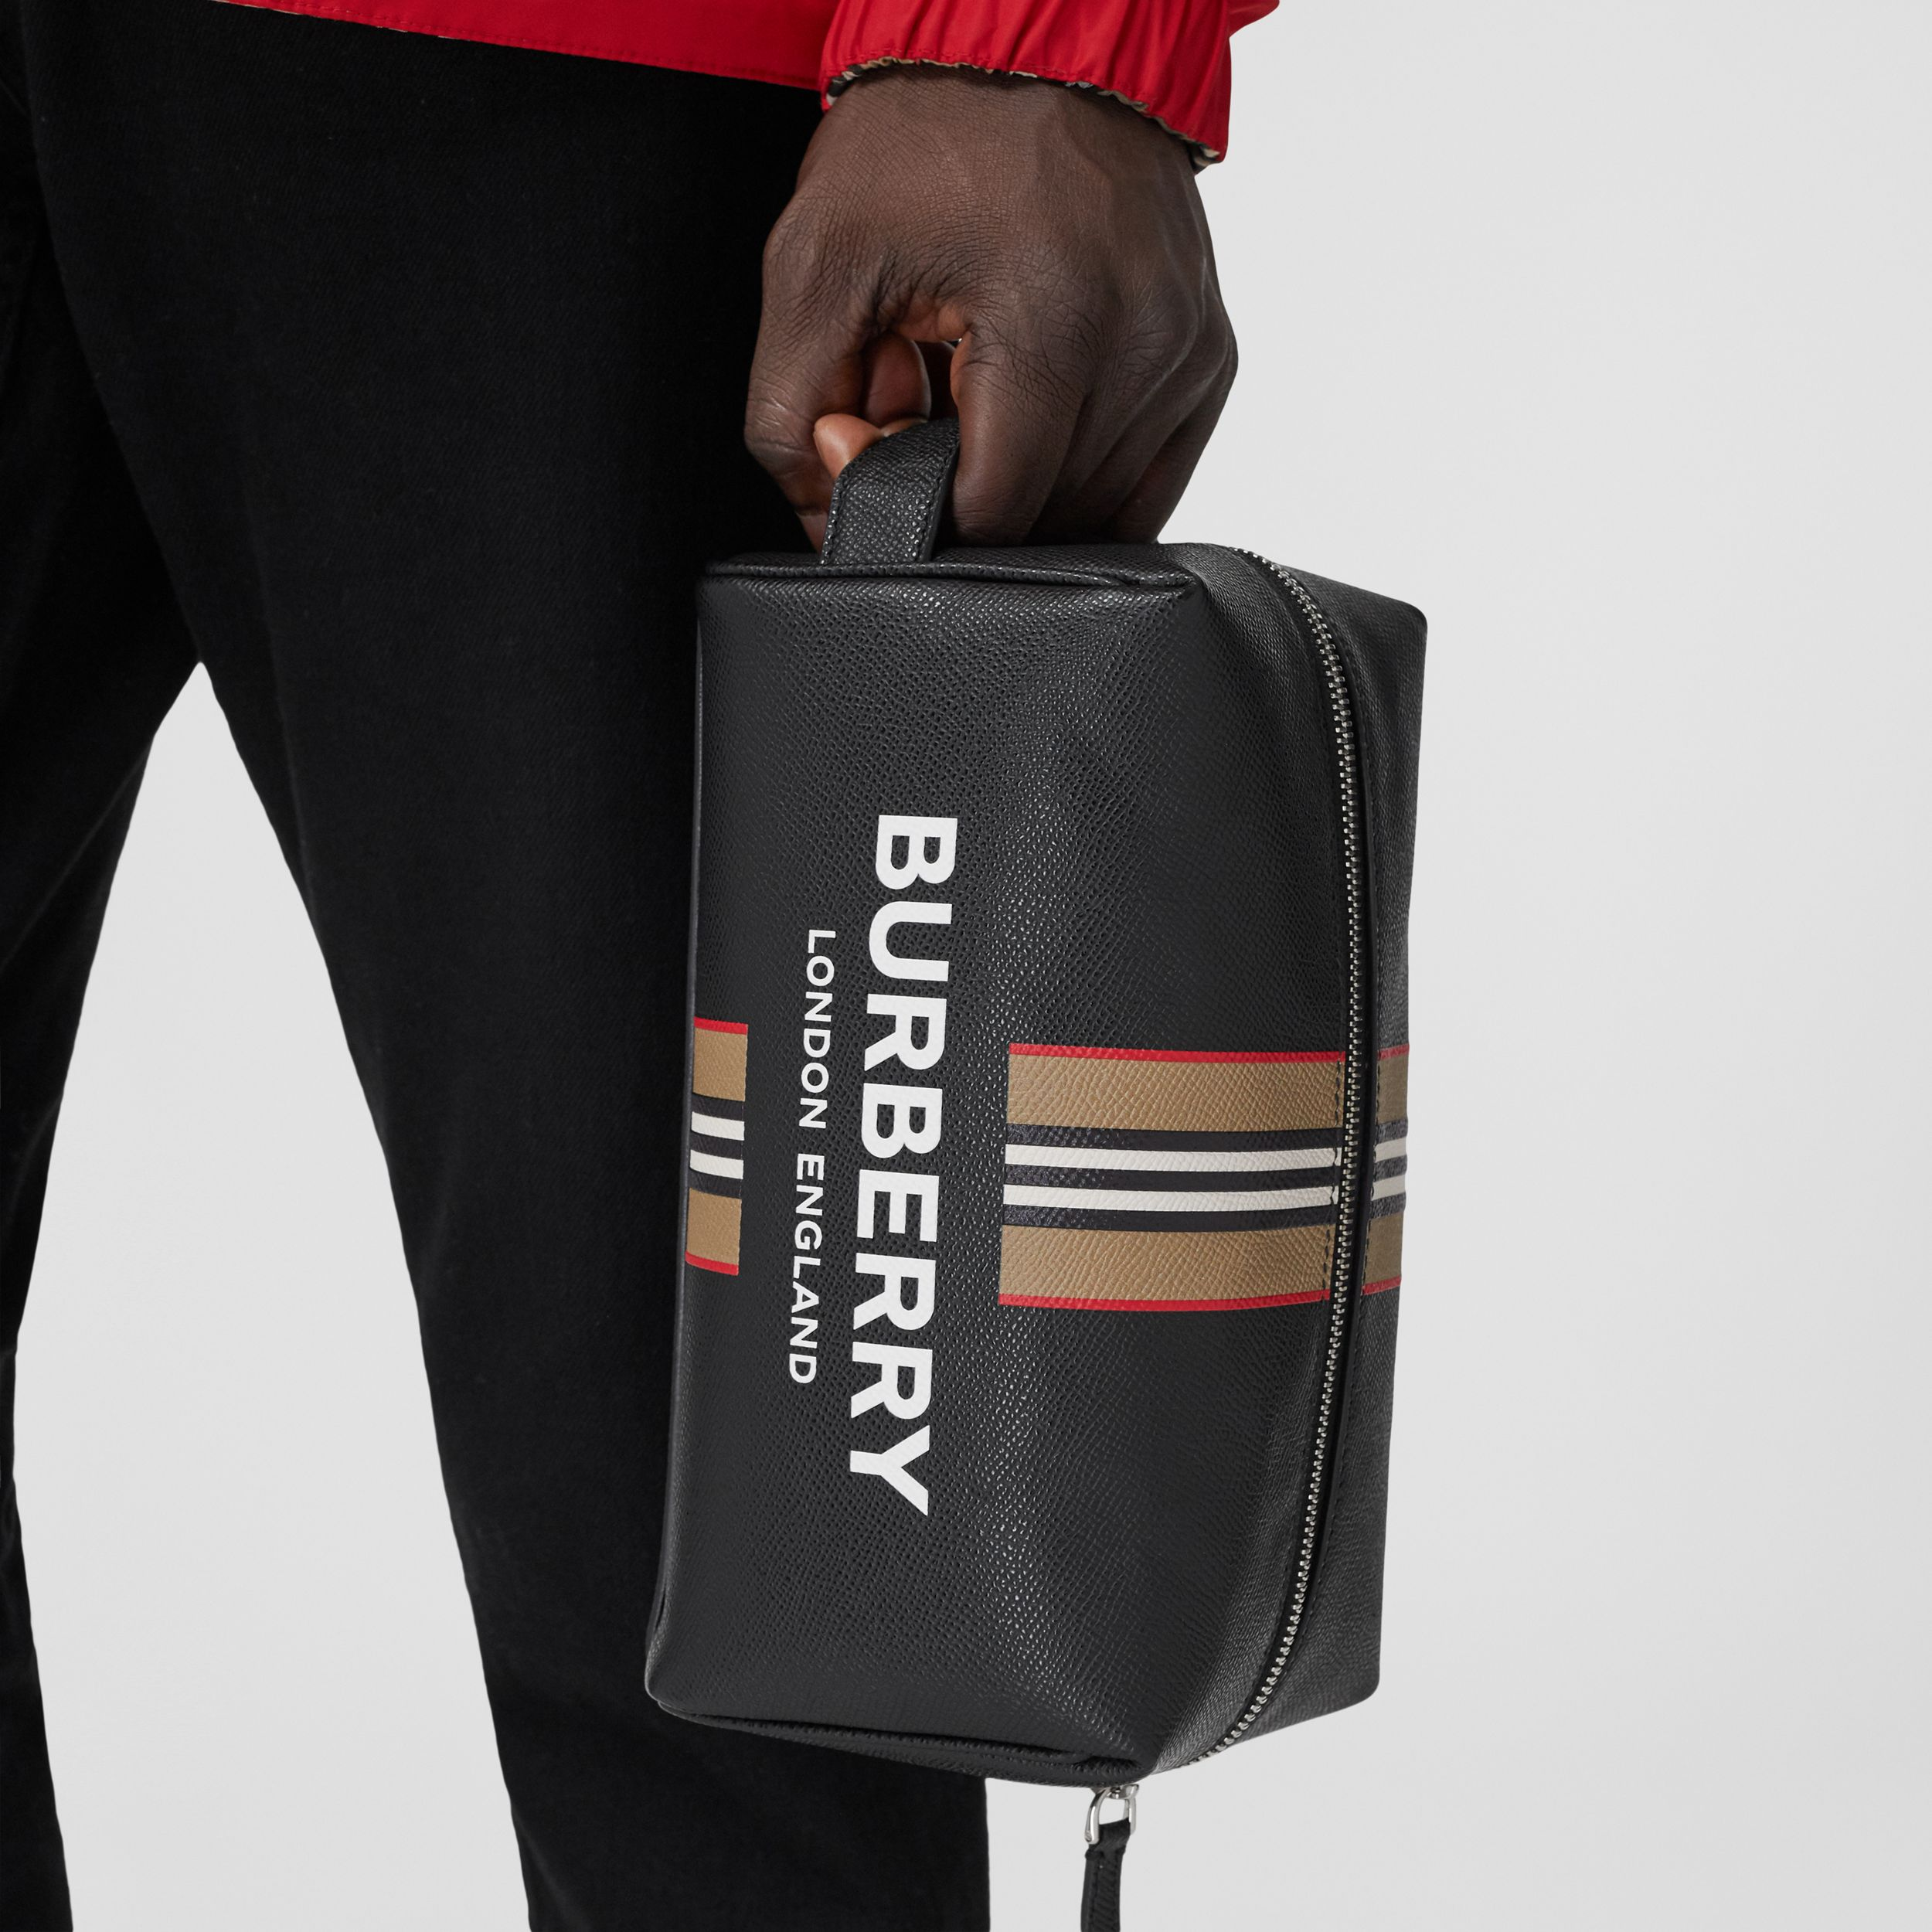 Logo and Icon Stripe Print Leather Travel Pouch in Black - Men | Burberry United States - 3